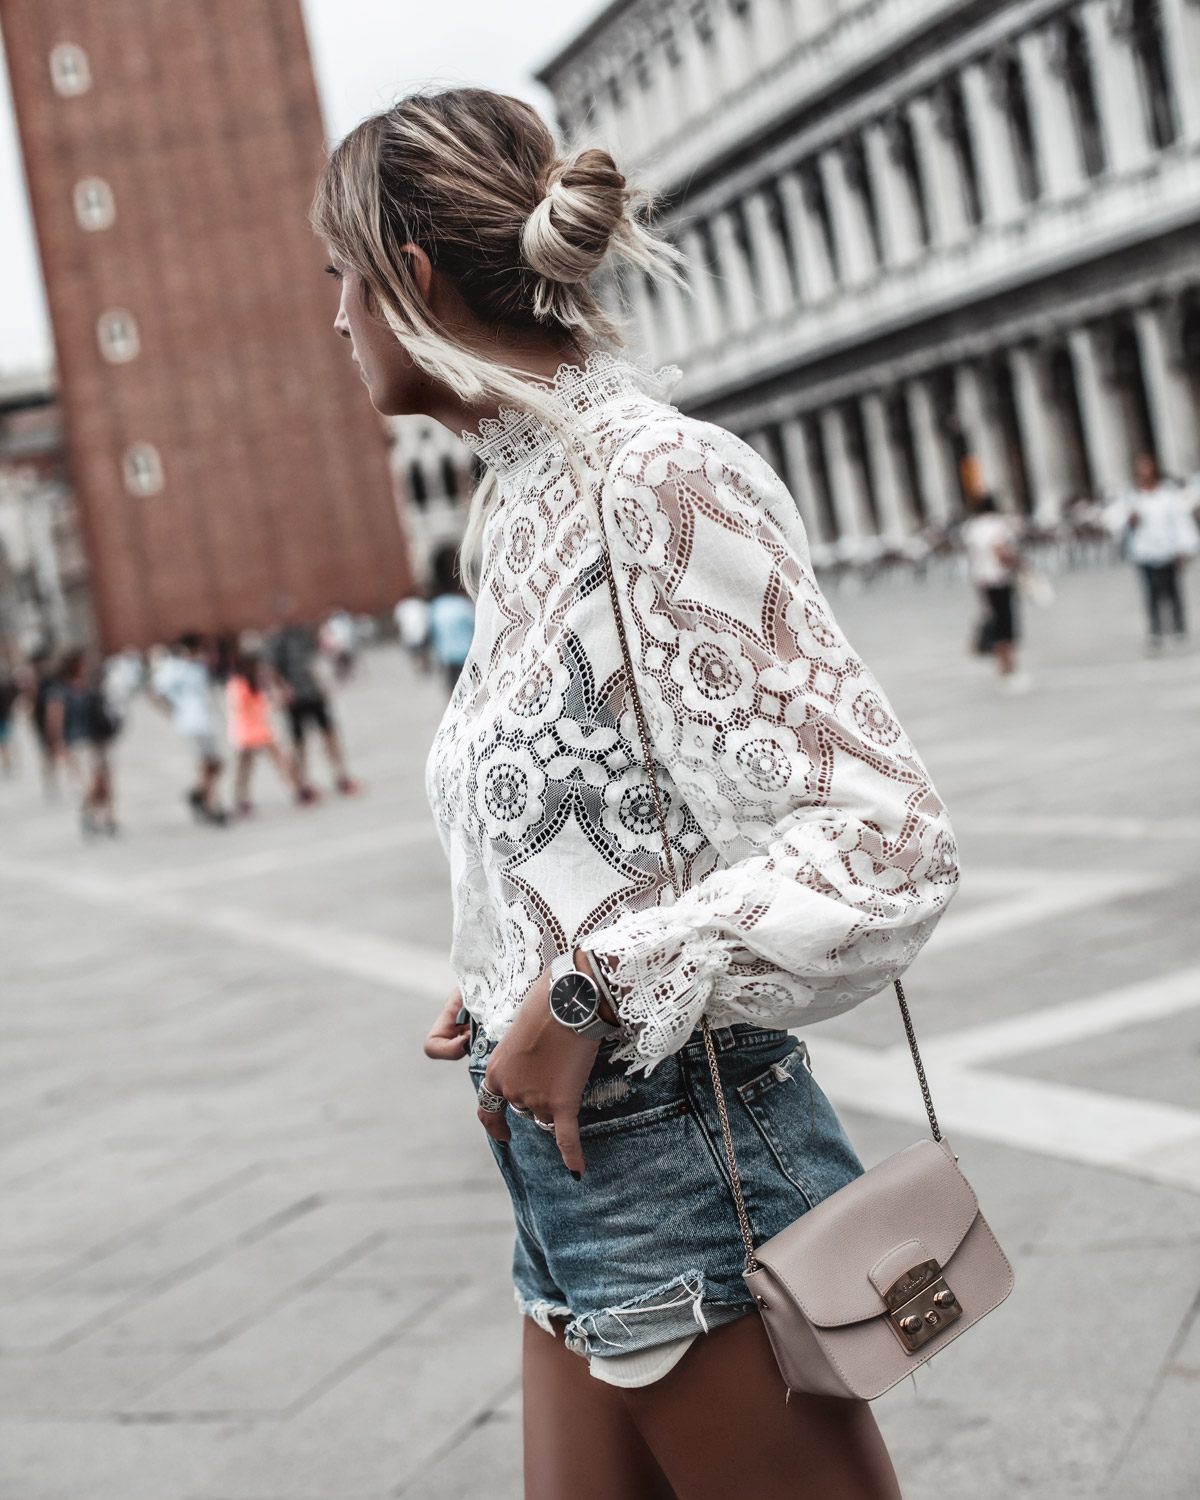 To my trip to Venice I wear white lace top jean shorts and beige bag